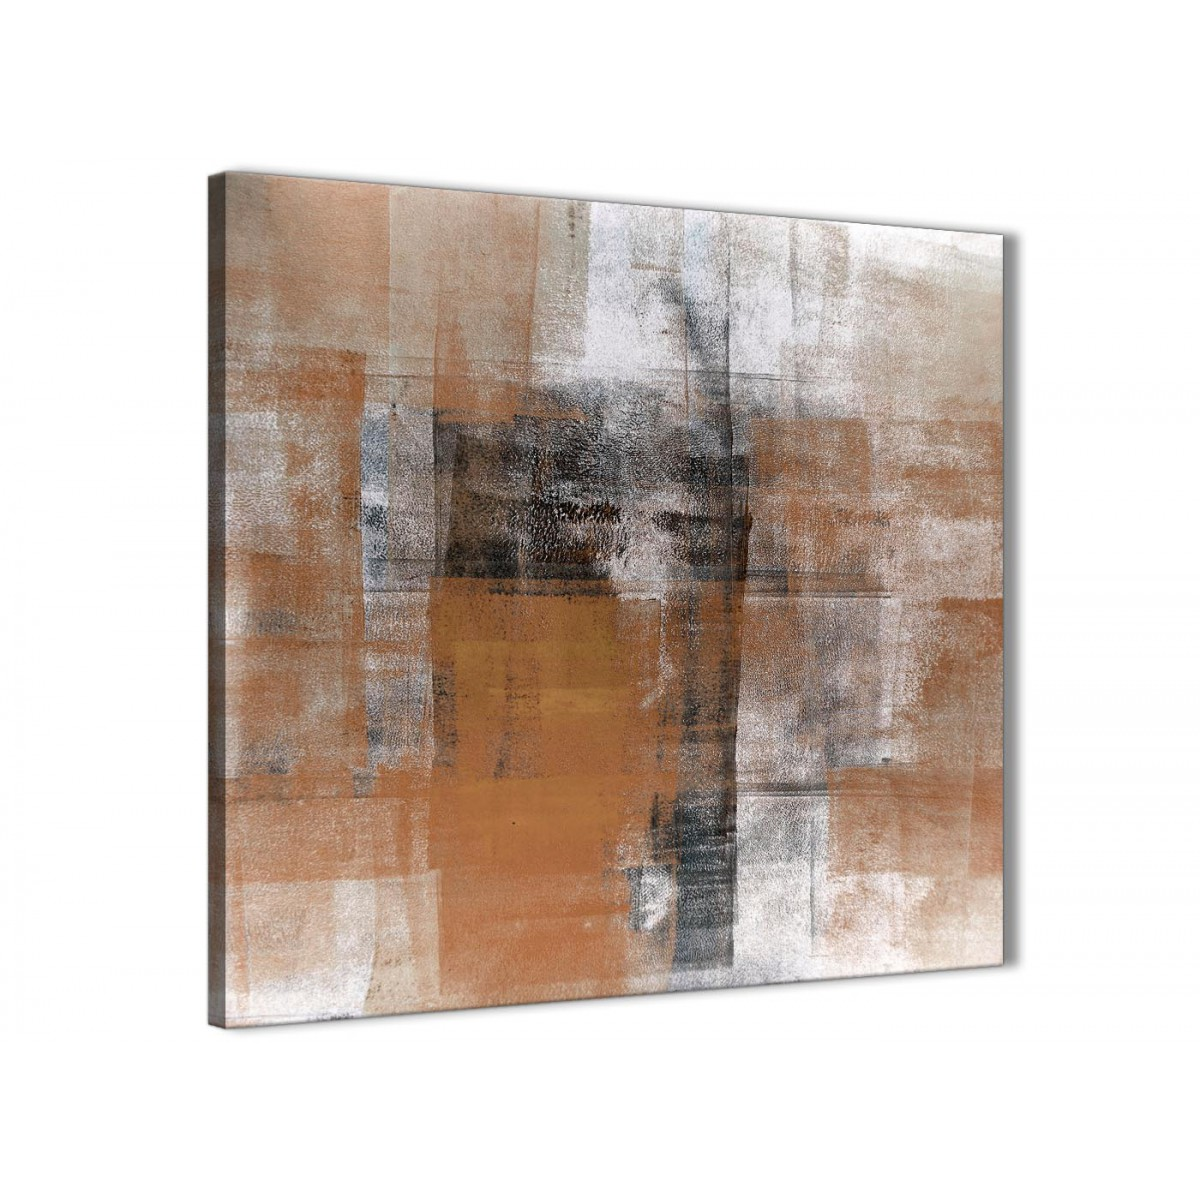 Orange Black White Painting Bathroom Canvas Wall Art Accessories Abstract 1s398s 49cm Square Print